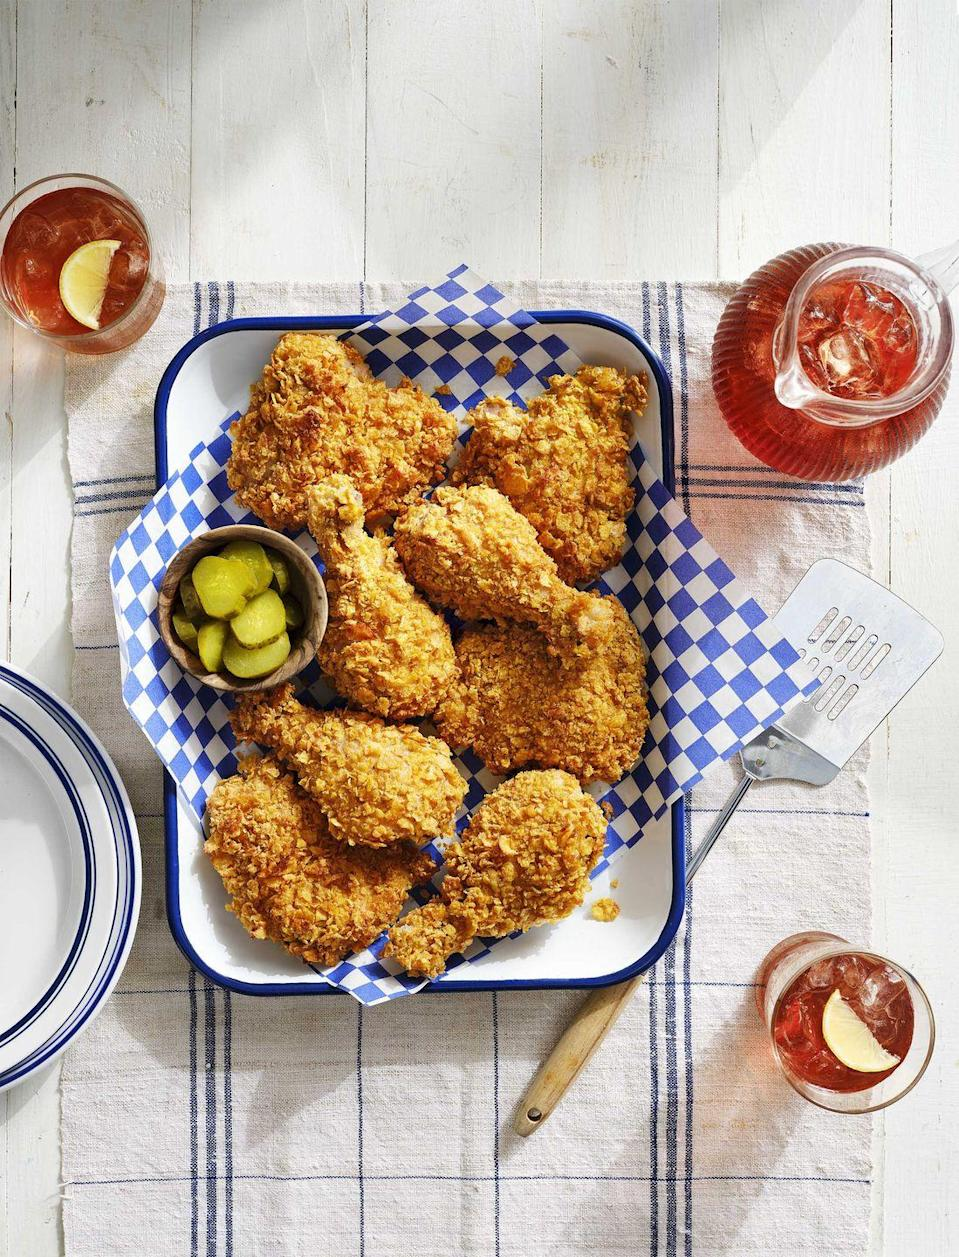 """<p>The cornflake covering counts as breakfast, right? This almost-like-fried chicken is perfect: crunchy and delicious.</p><p><strong><a href=""""https://www.countryliving.com/food-drinks/a30417464/cornflake-crusted-baked-chicken-recipe/"""" rel=""""nofollow noopener"""" target=""""_blank"""" data-ylk=""""slk:Get the recipe"""" class=""""link rapid-noclick-resp"""">Get the recipe</a>.</strong> </p>"""